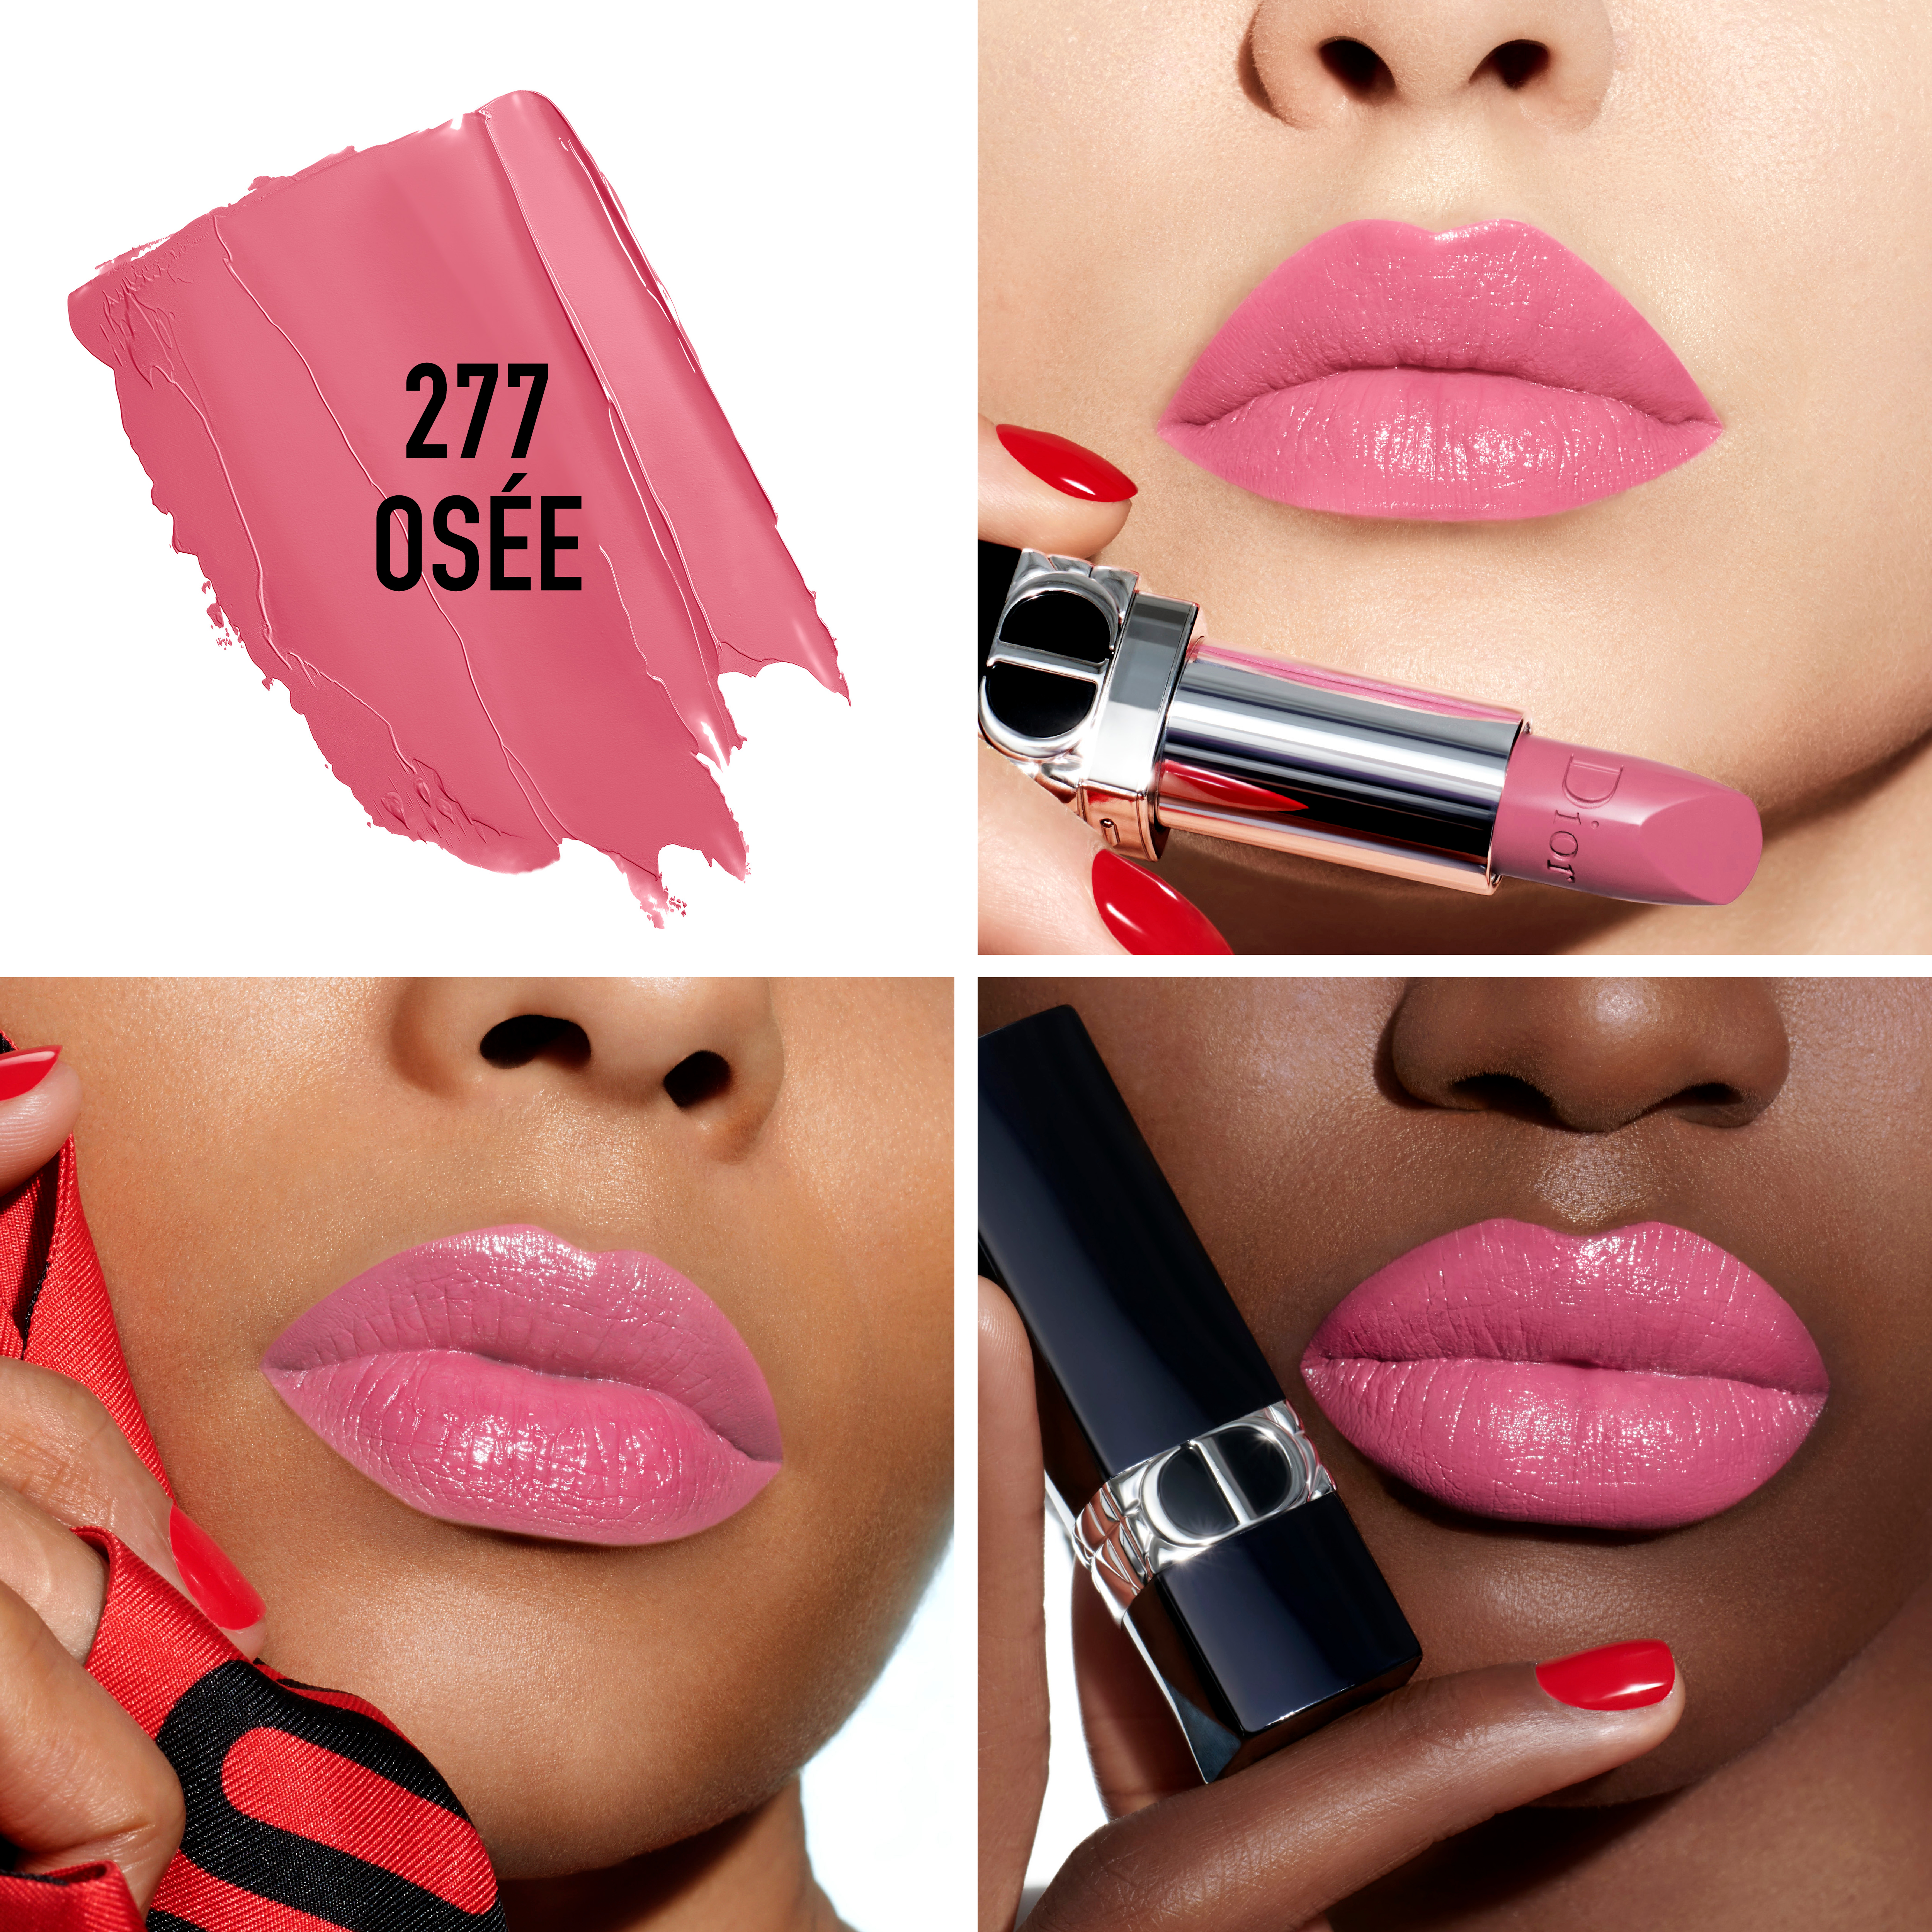 DIOR Rouge Dior Refillable Satin Lipstick, 277 osee